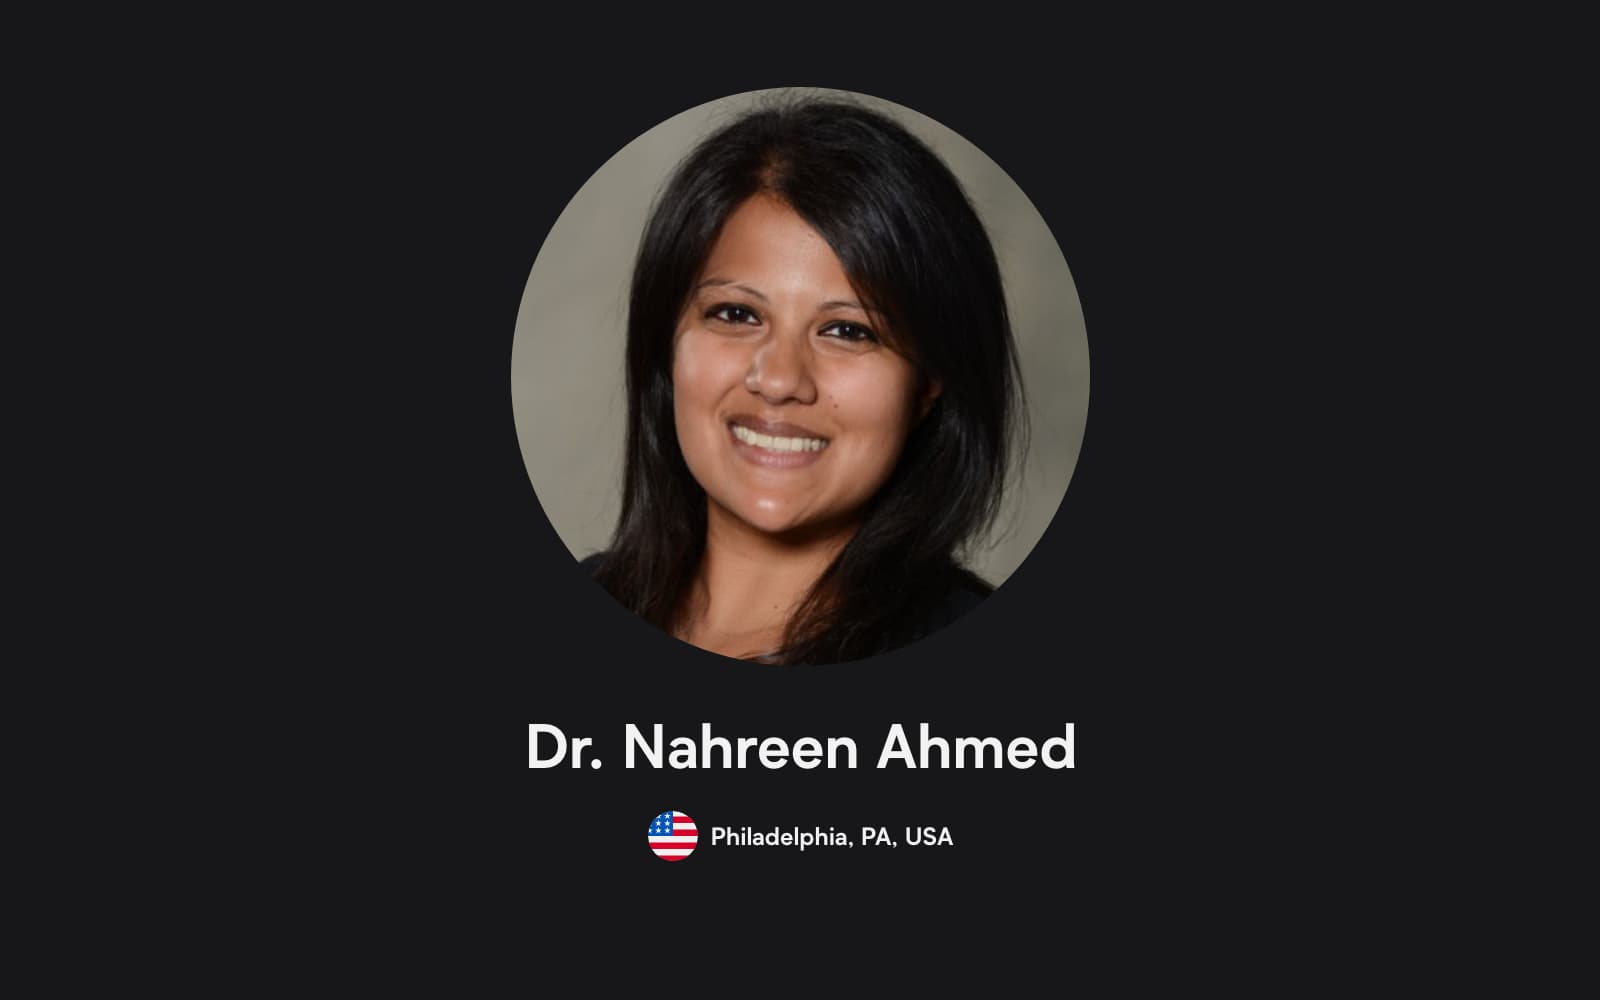 Image of Dr Nahreen Ahmed